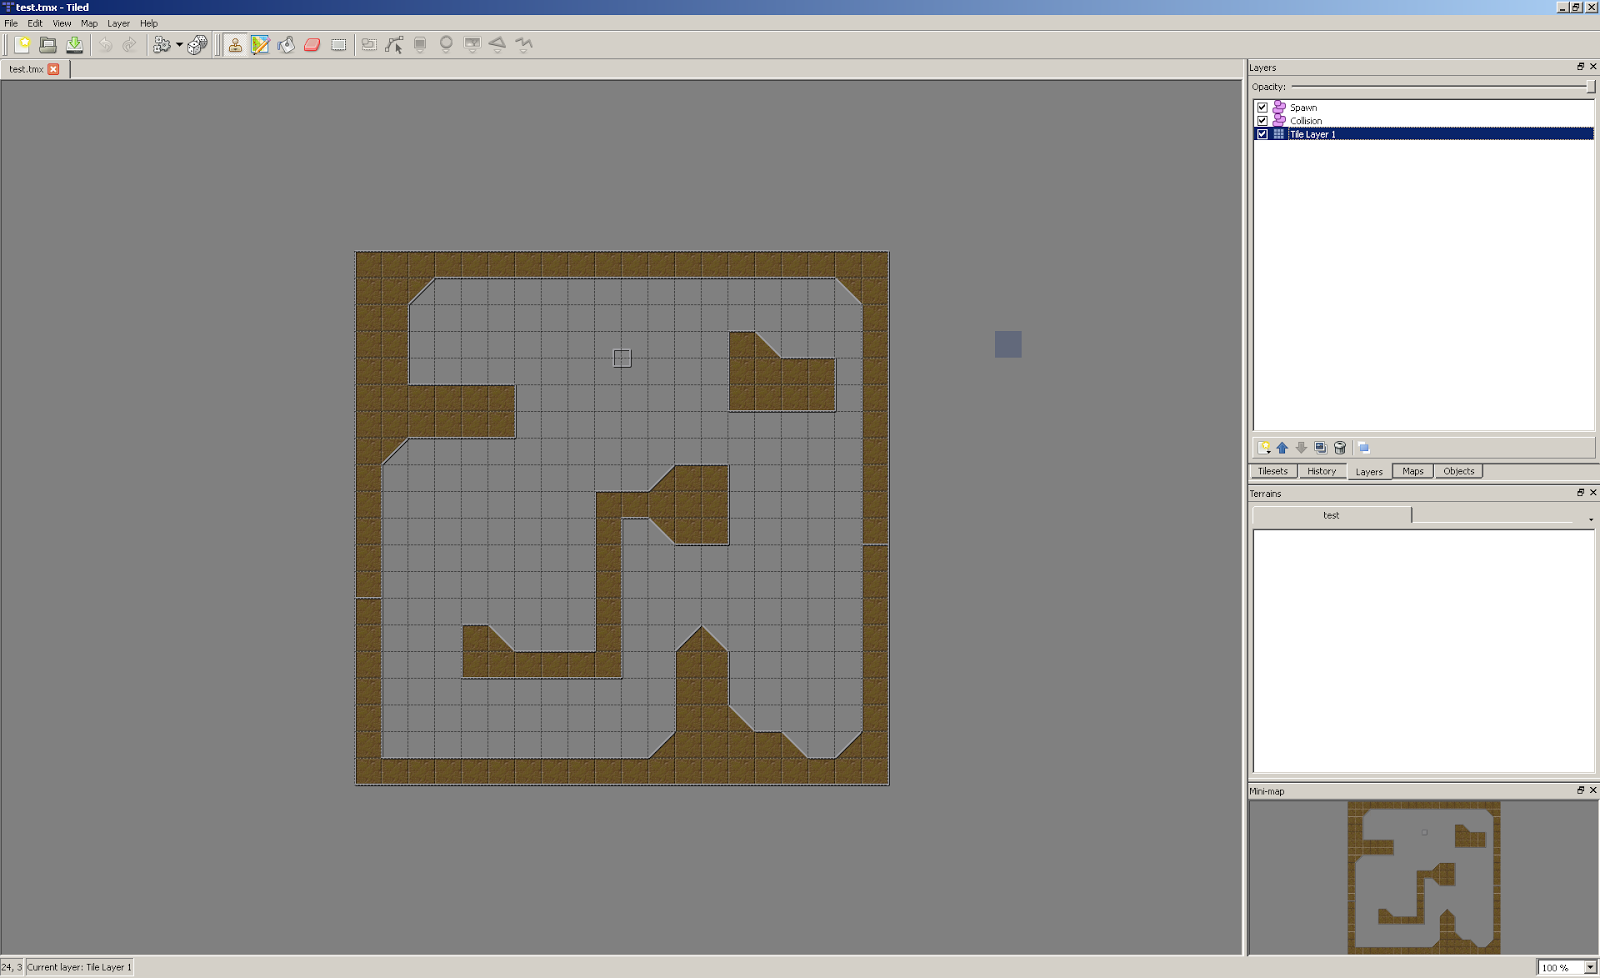 Faking Ambient Occlusion in SFML tile maps